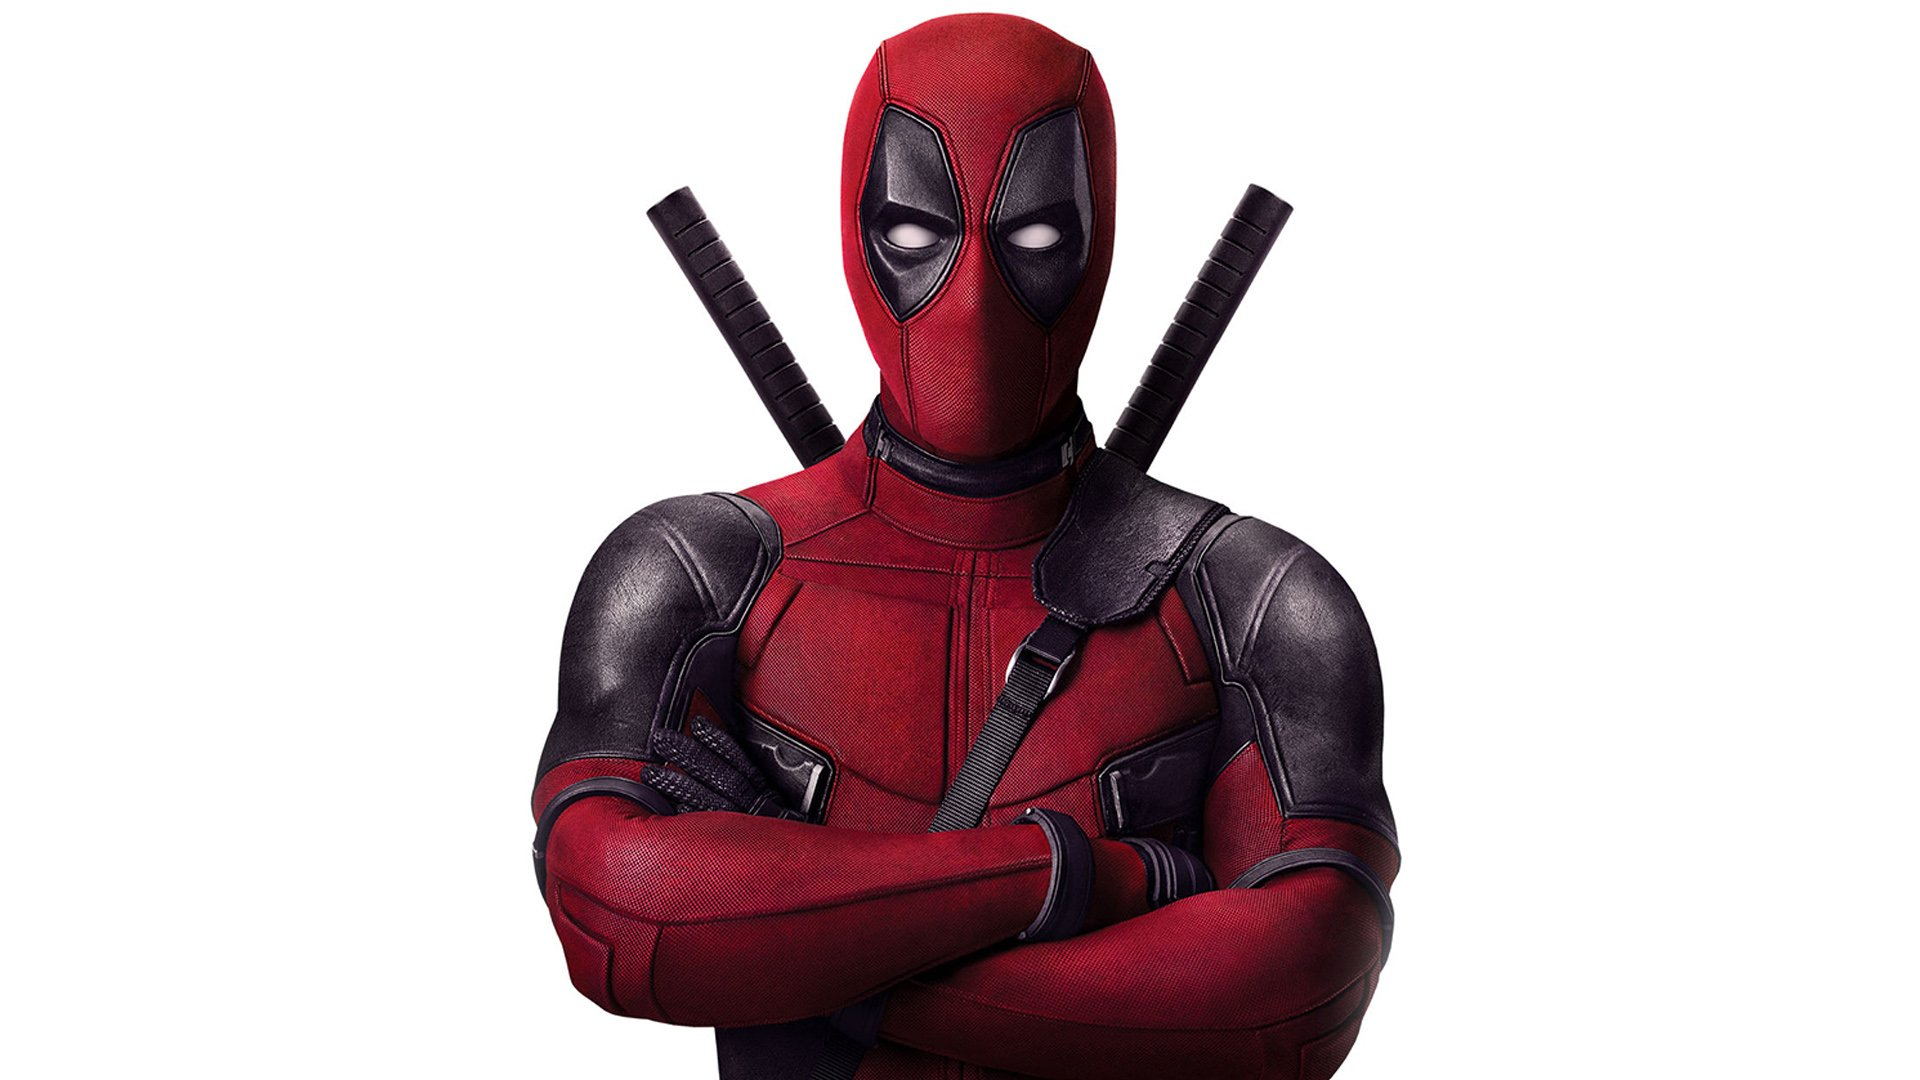 51 Deadpool HD Wallpapers | Backgrounds - Wallpaper Abyss